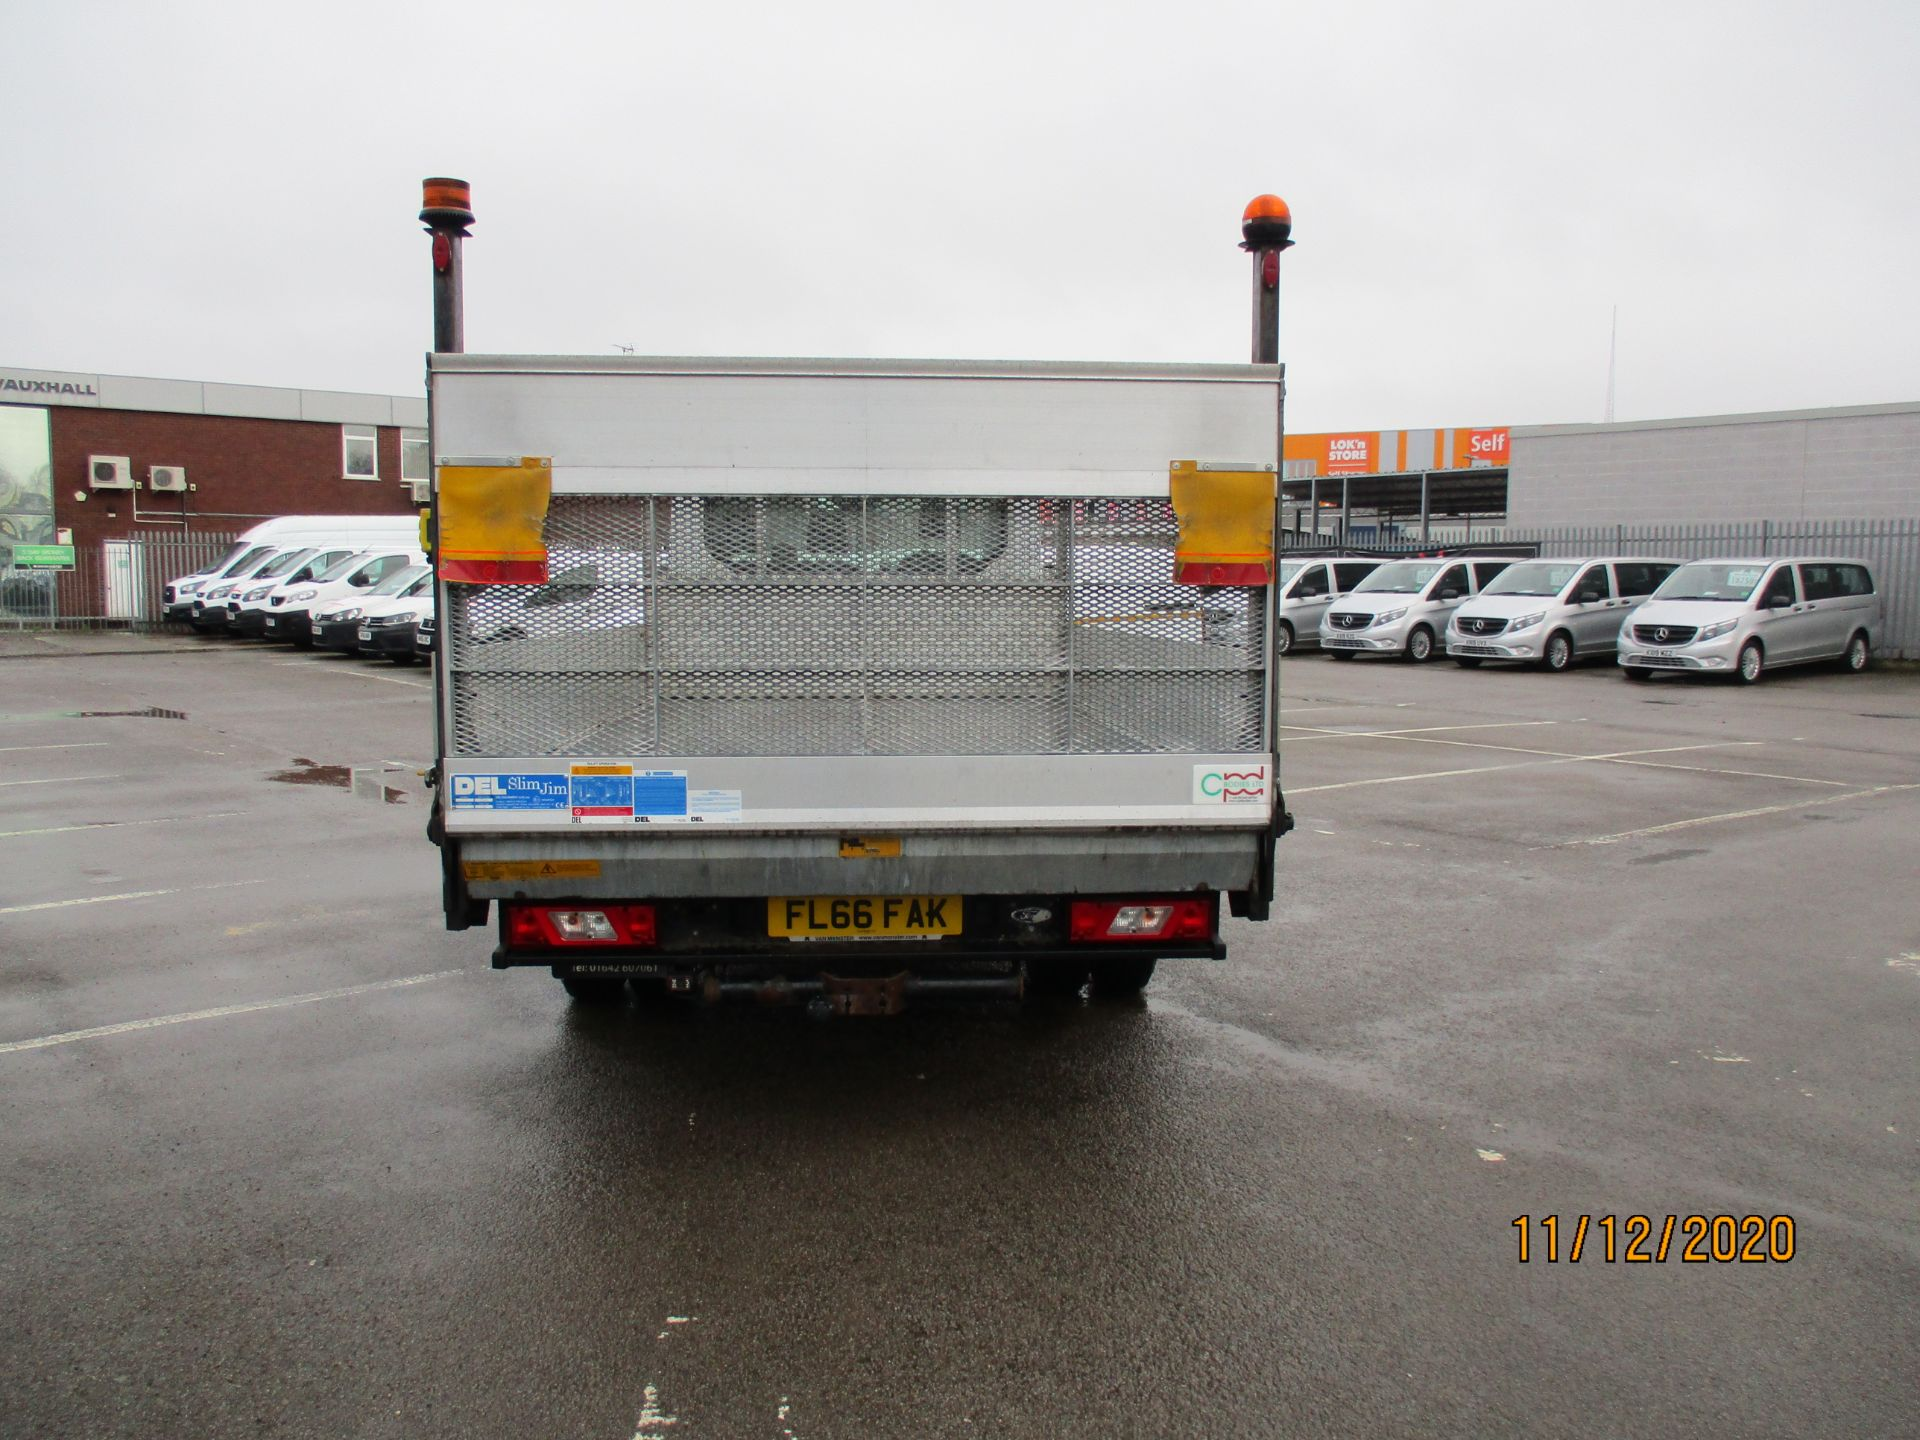 2016 Ford Transit 2.2 Tdci 125Ps Chassis Cab (FL66FAK) Image 6